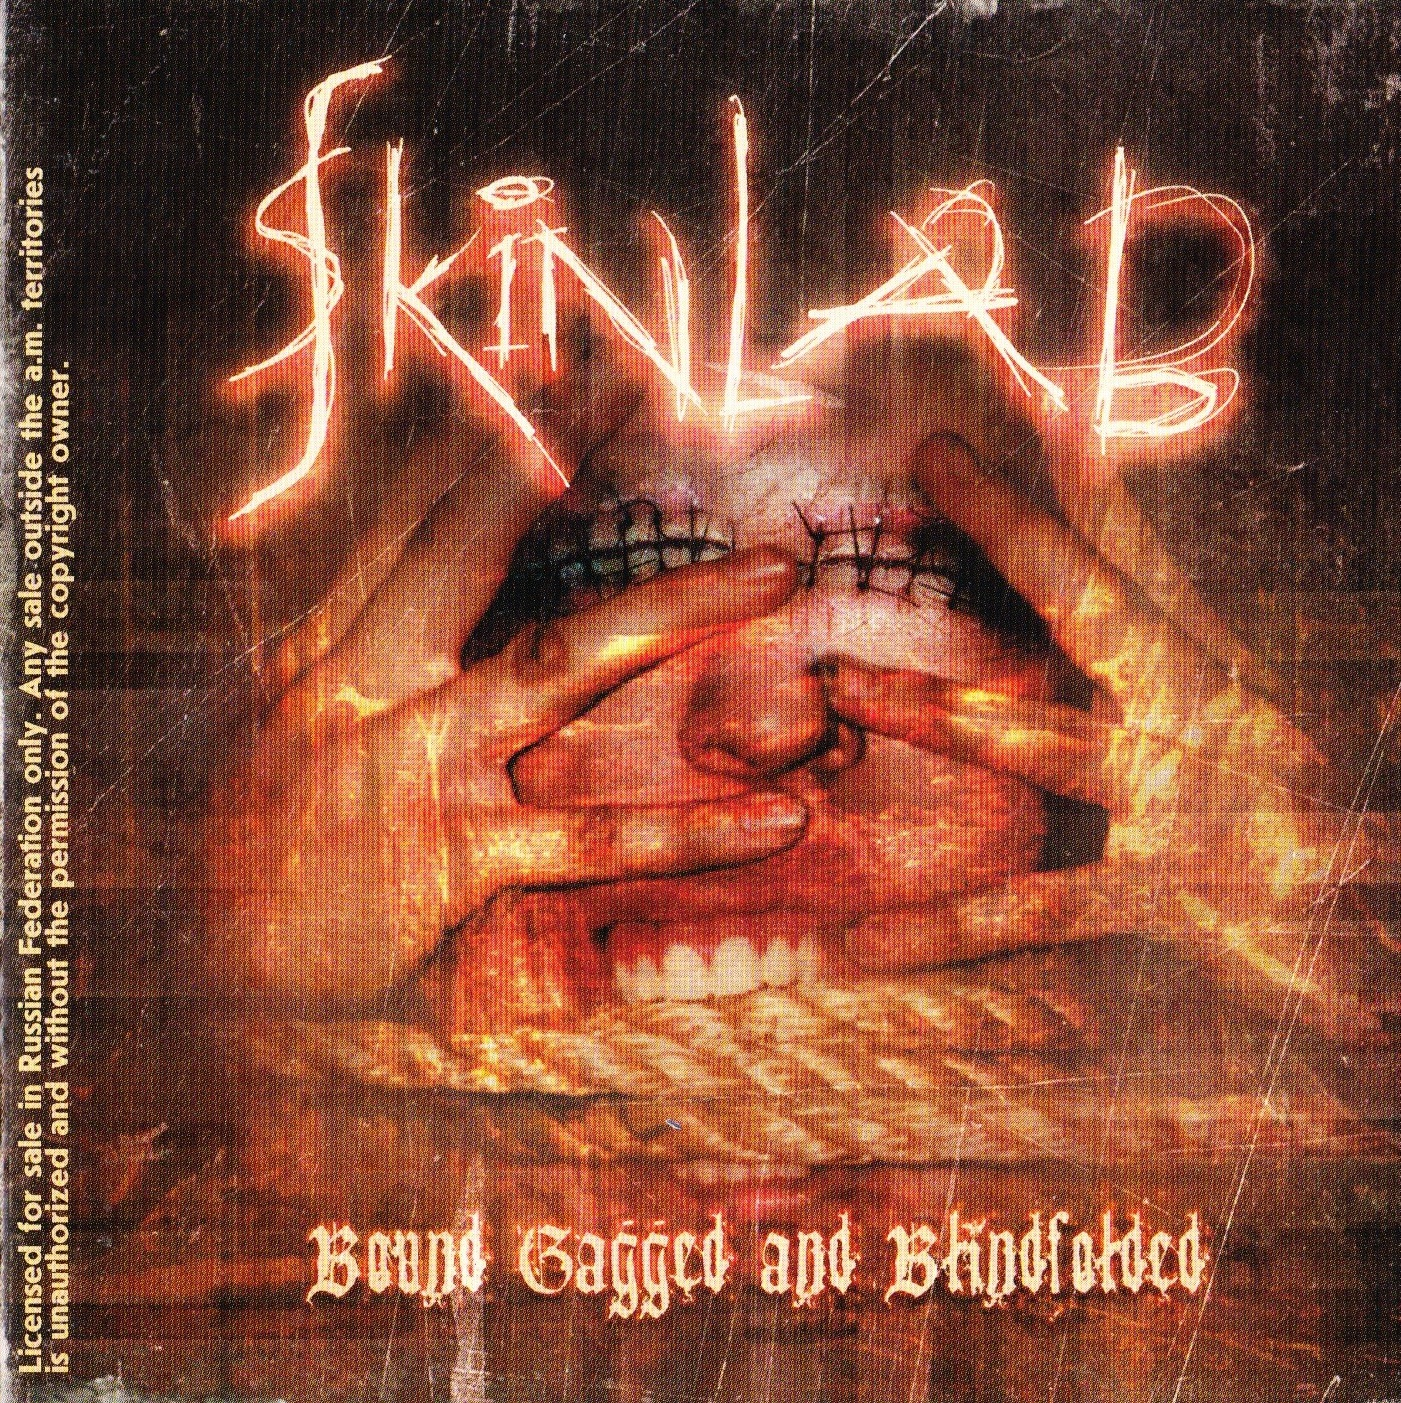 Skinlab — Bound, Gagged and Blindfolded (1997)